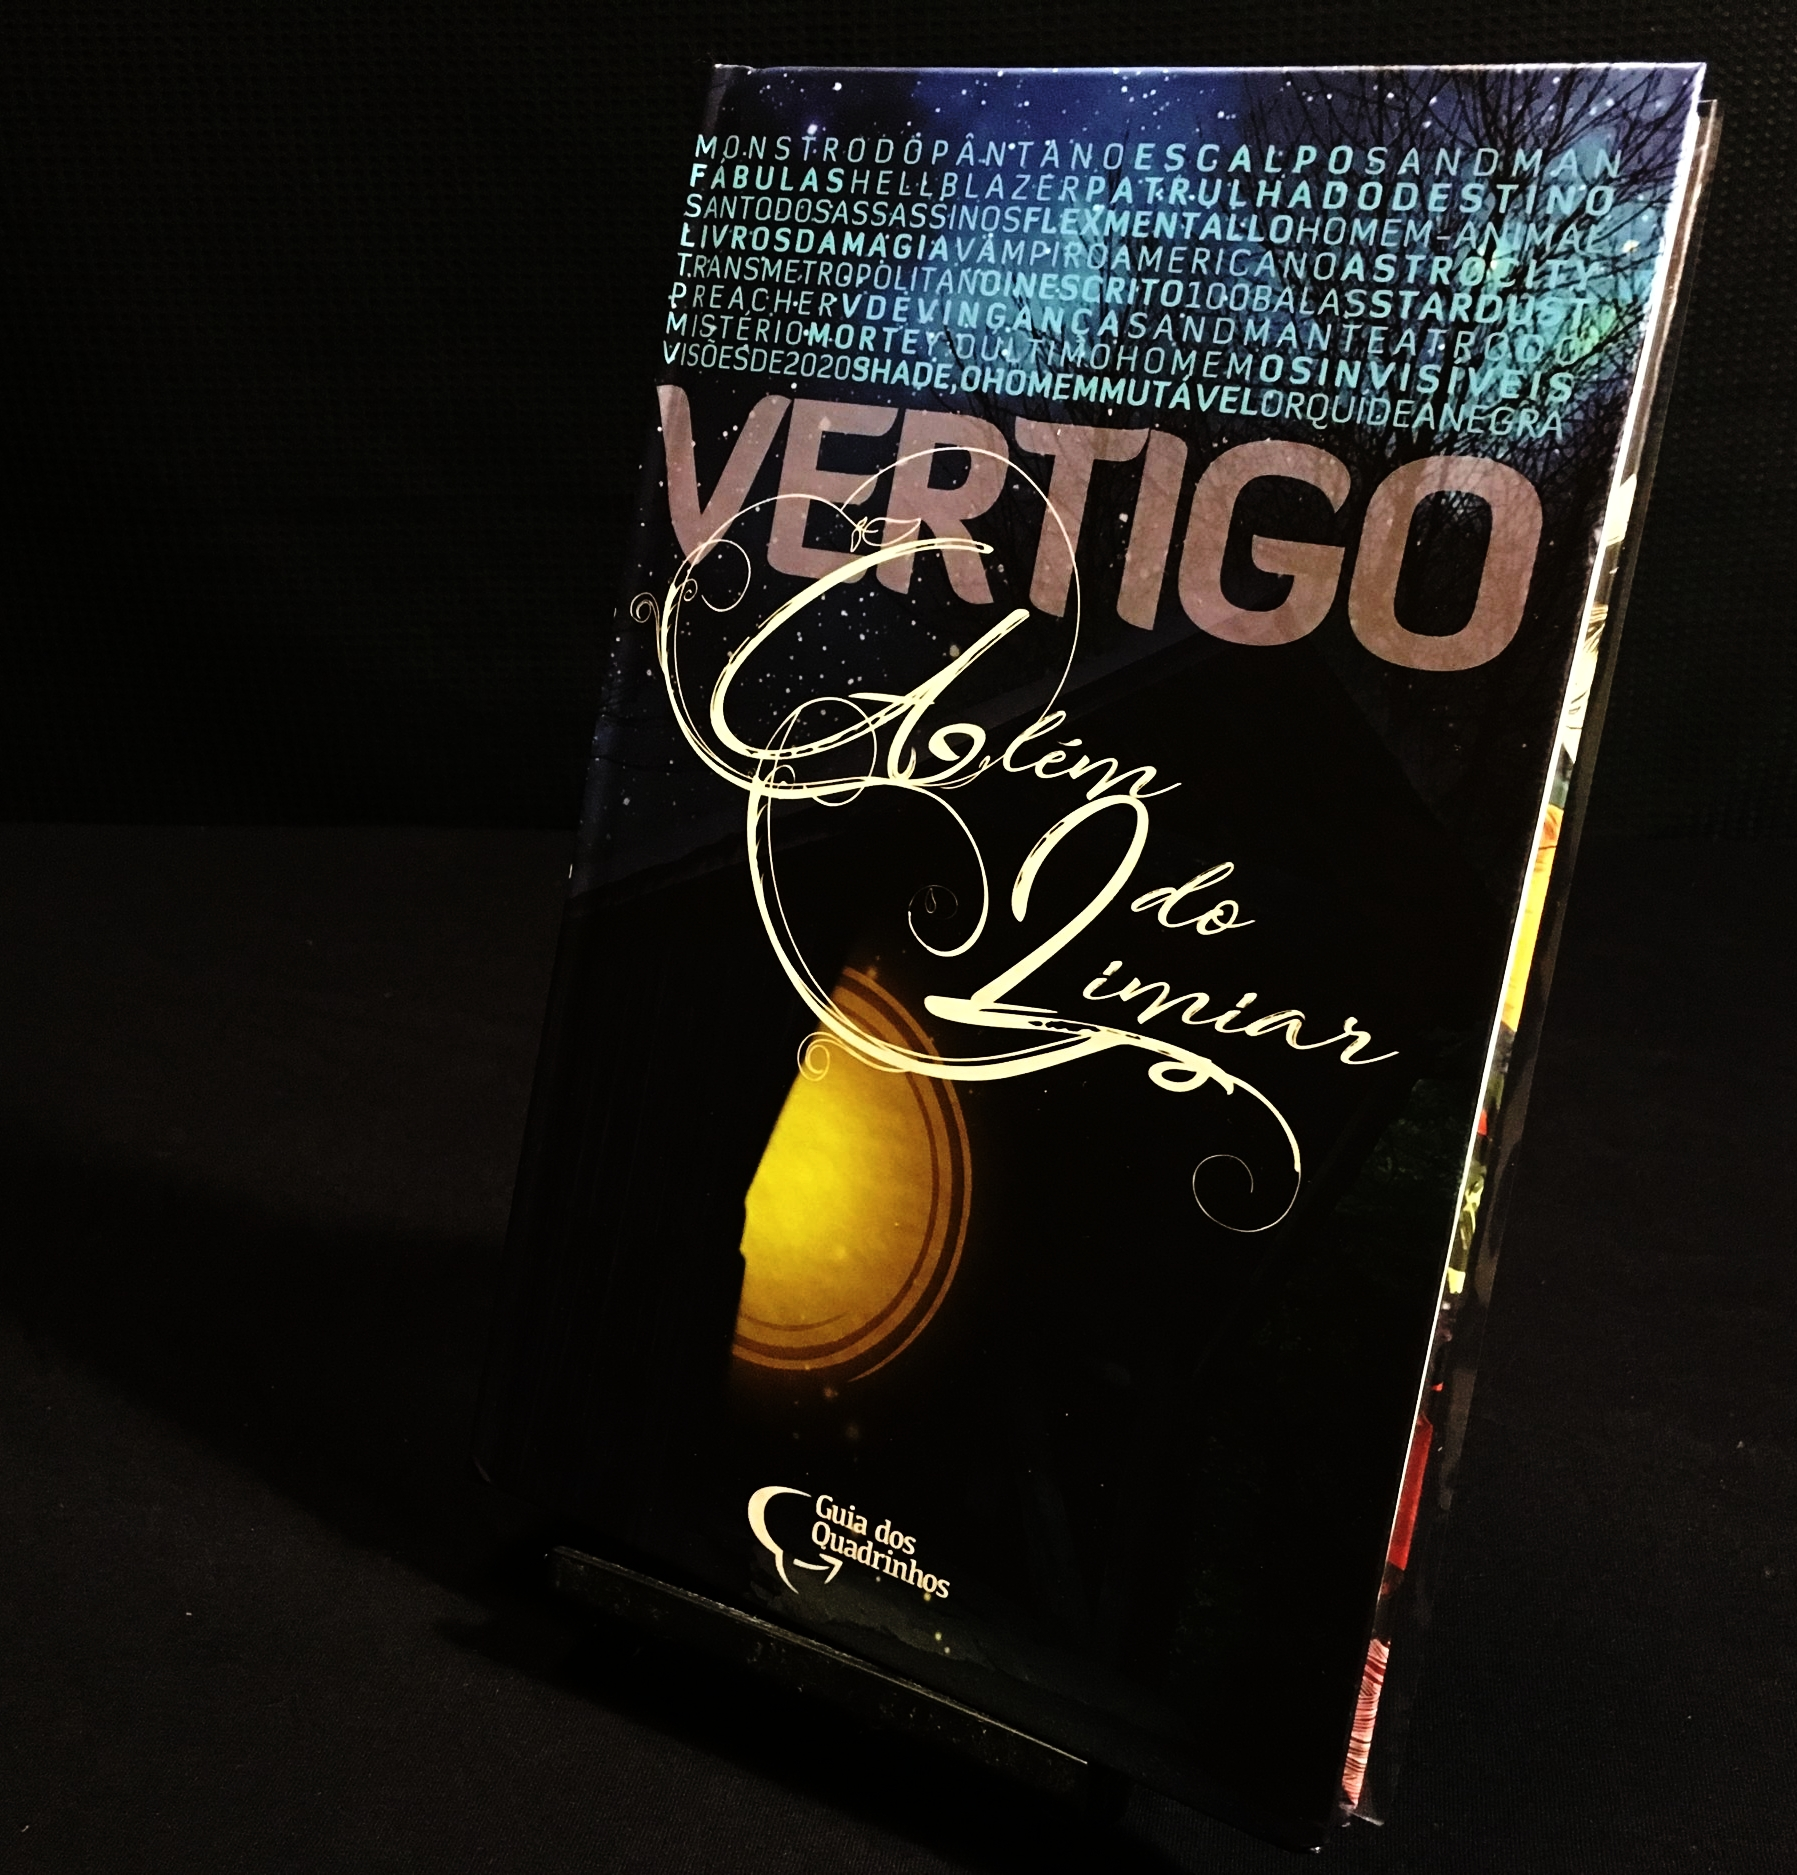 Tribute to Vertigo - Além do Limiar 2018 (Rights granted by the publisher for use and dissemination)